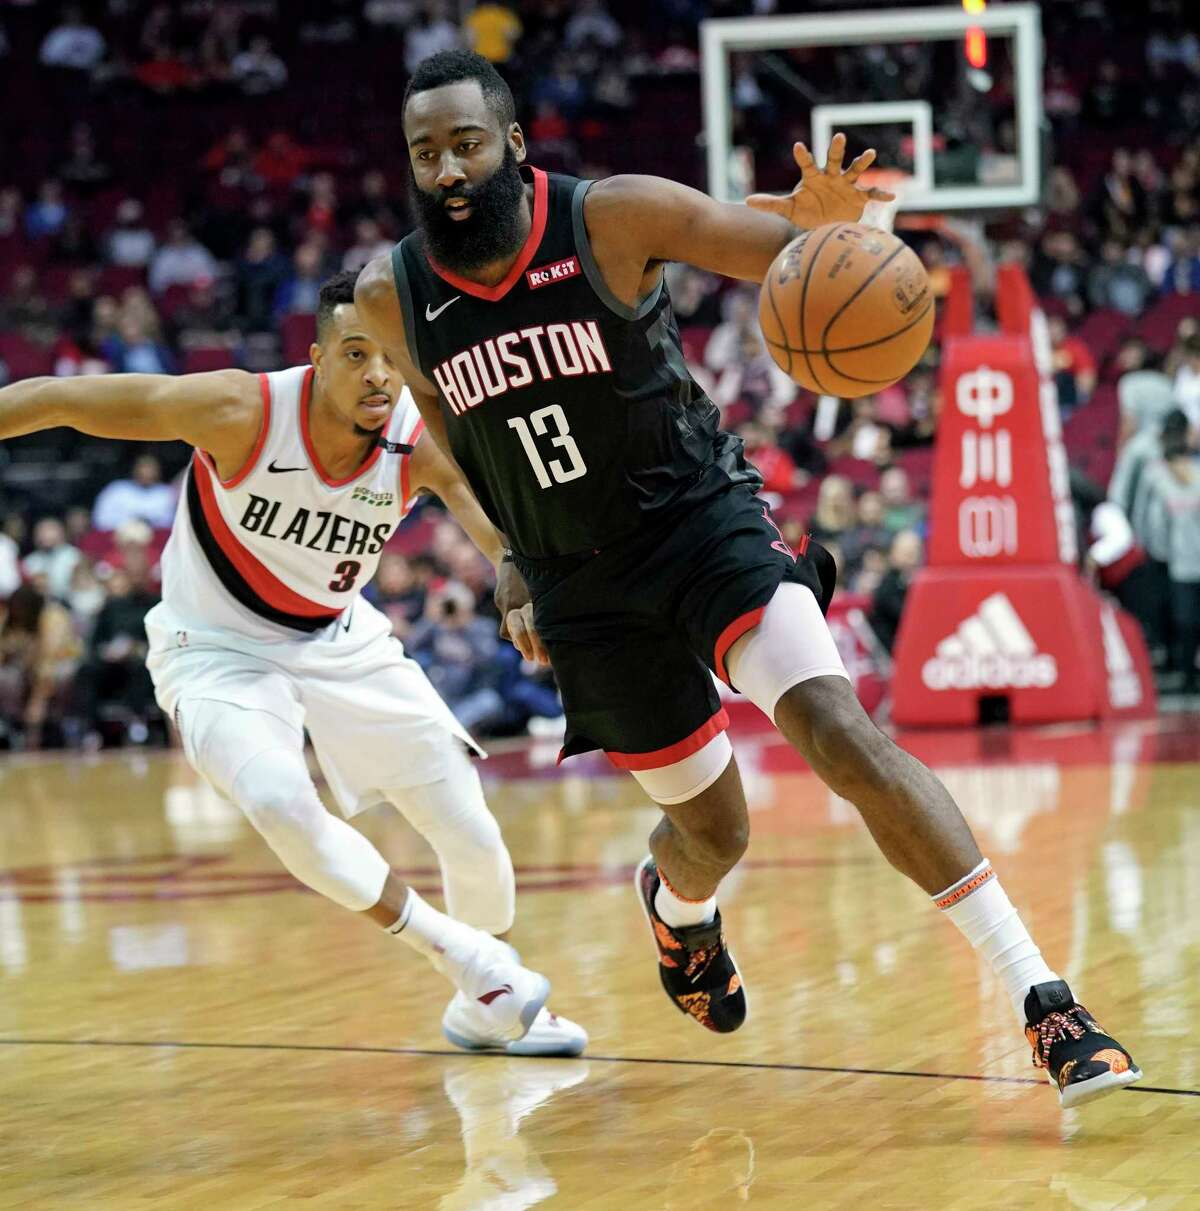 Houston Rockets' James Harden (13) drives past Portland Trail Blazers' CJ McCollum (3) during the first half of an NBA basketball game Tuesday, Dec. 11, 2018, in Houston. (AP Photo/David J. Phillip)